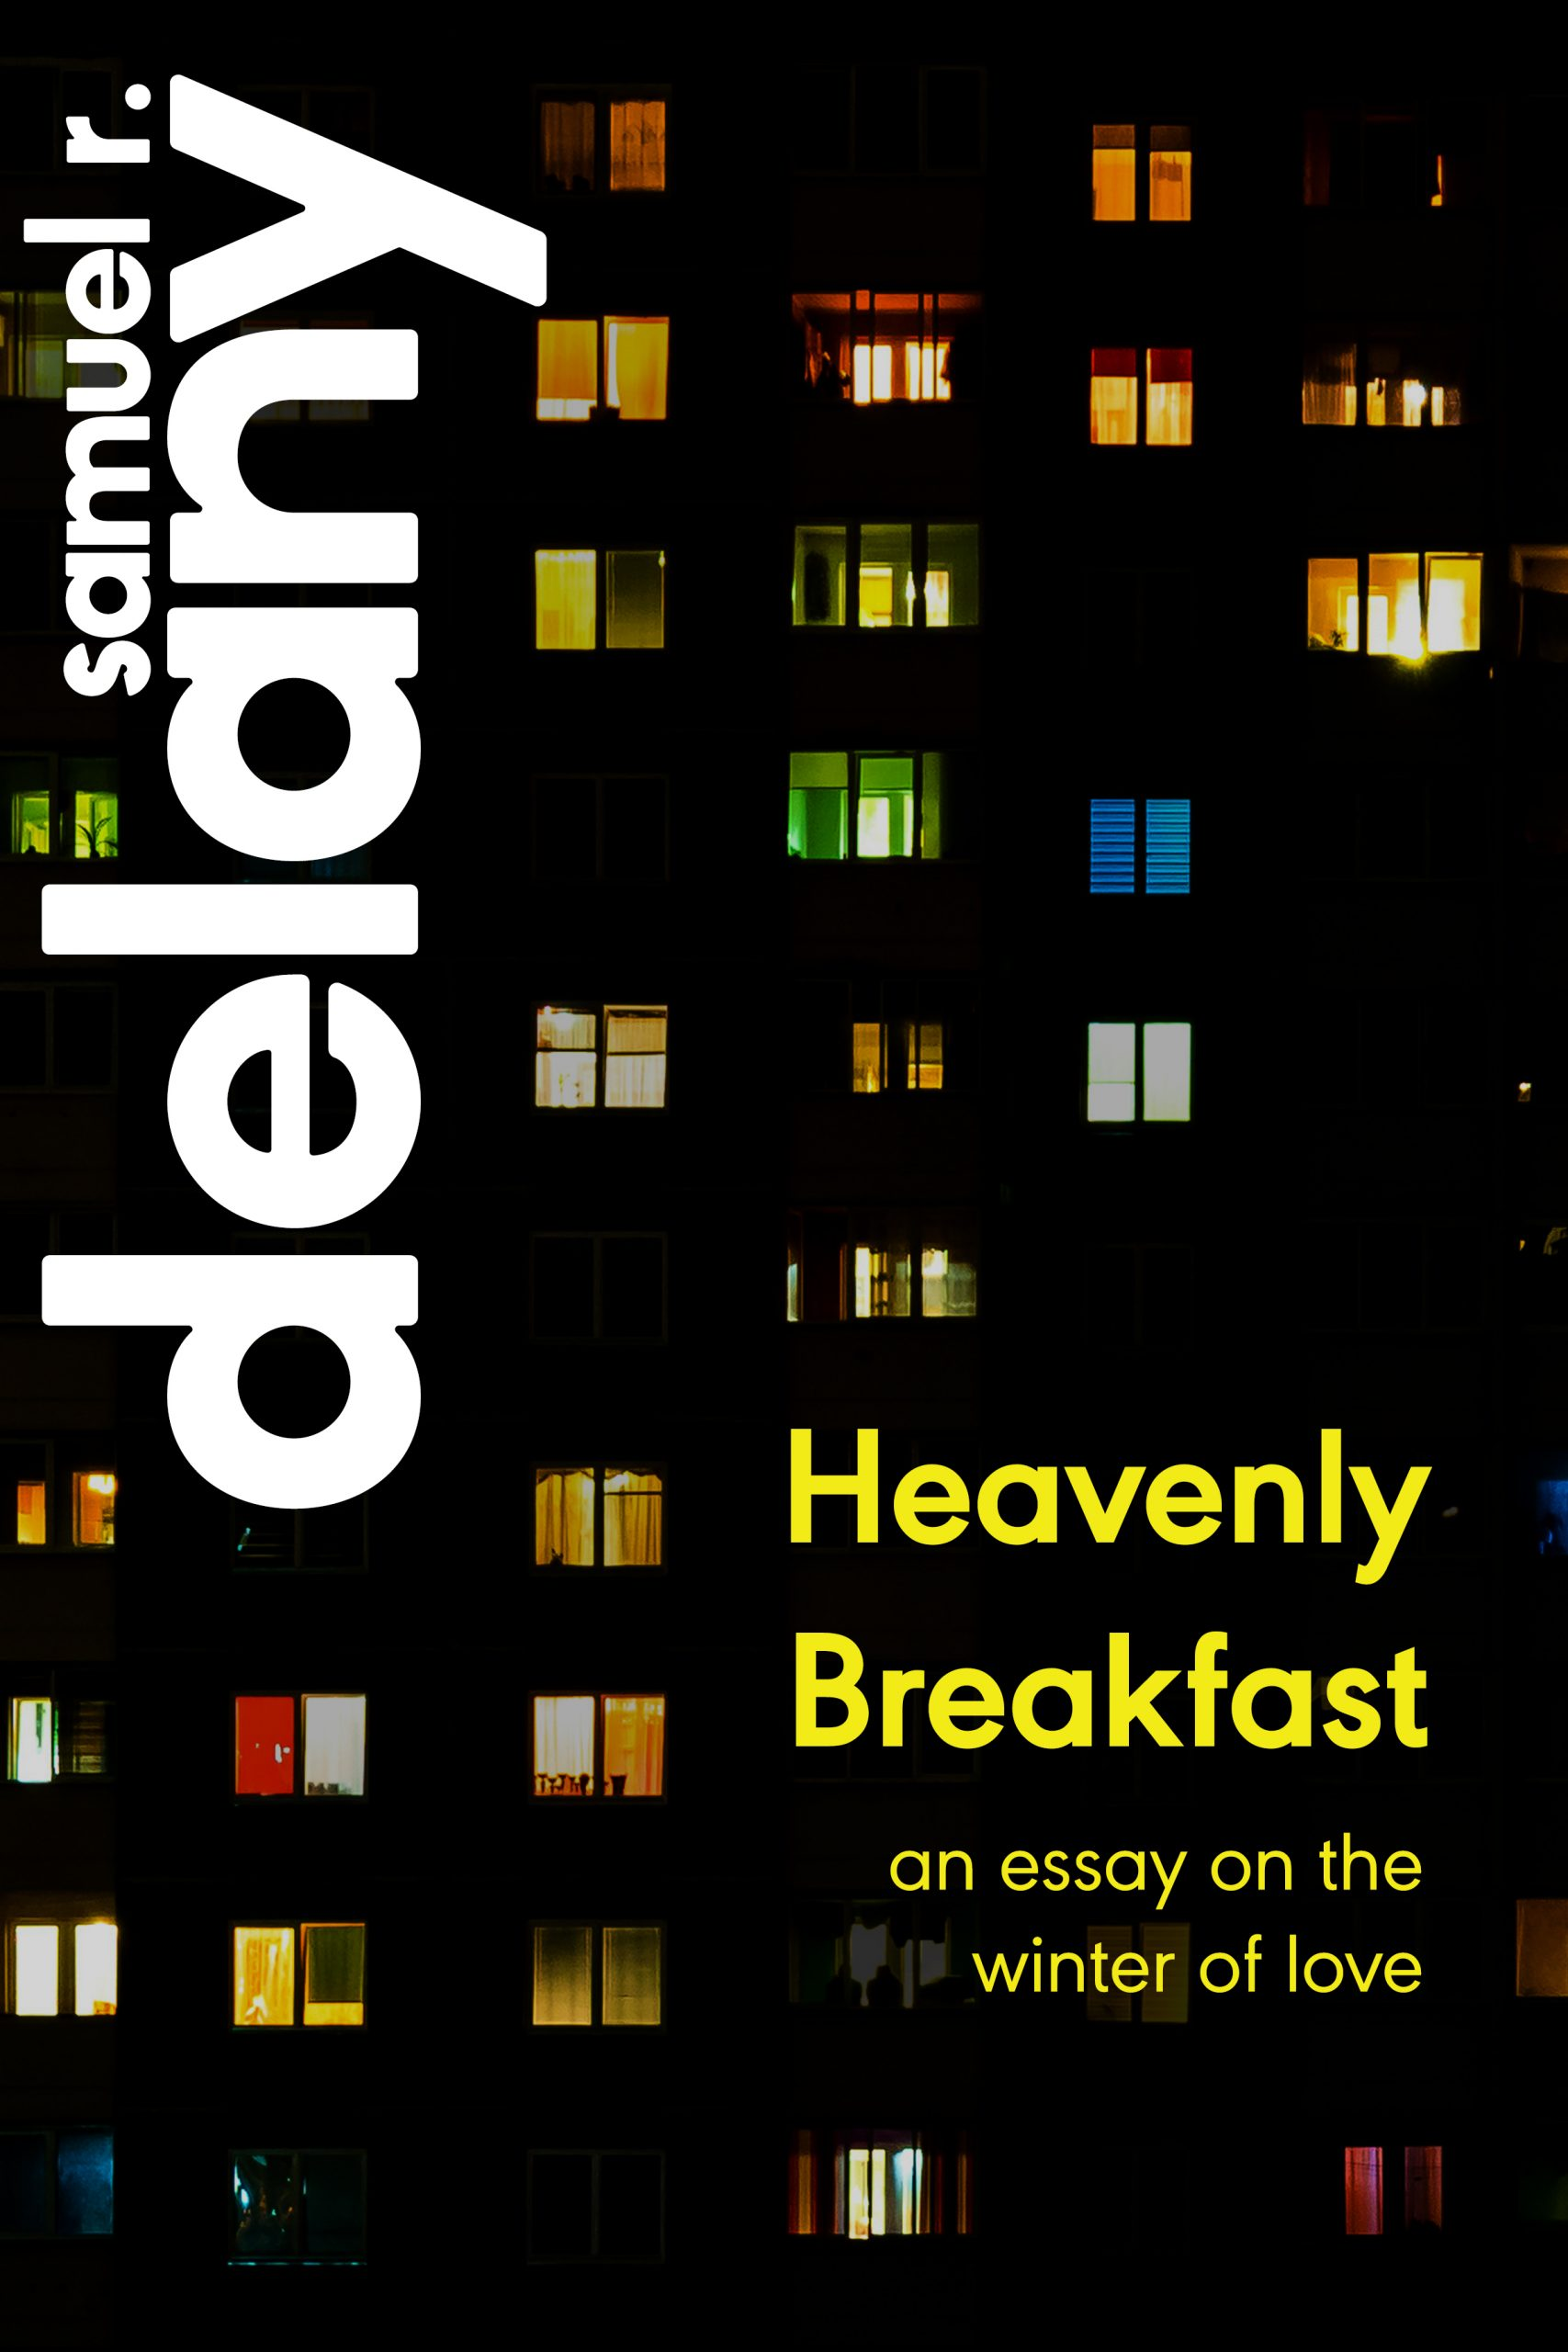 Heavenly Breakfast, by Samuel R. Delany